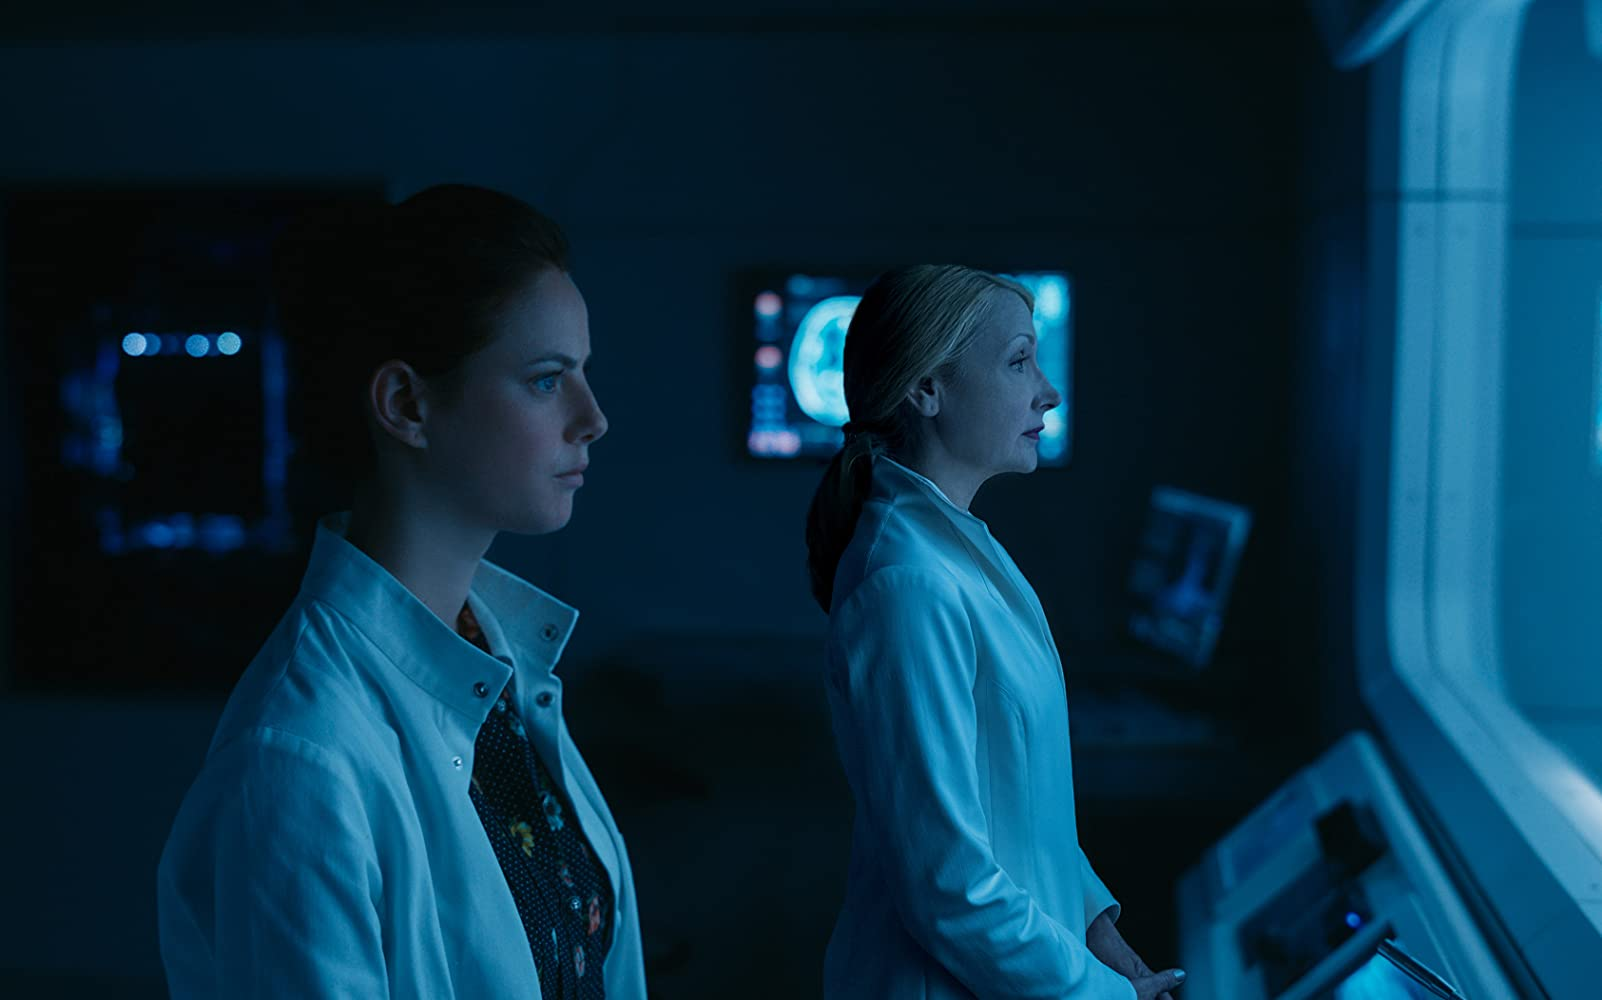 Patricia Clarkson and Kaya Scodelario in Maze Runner: The Death Cure (2018)